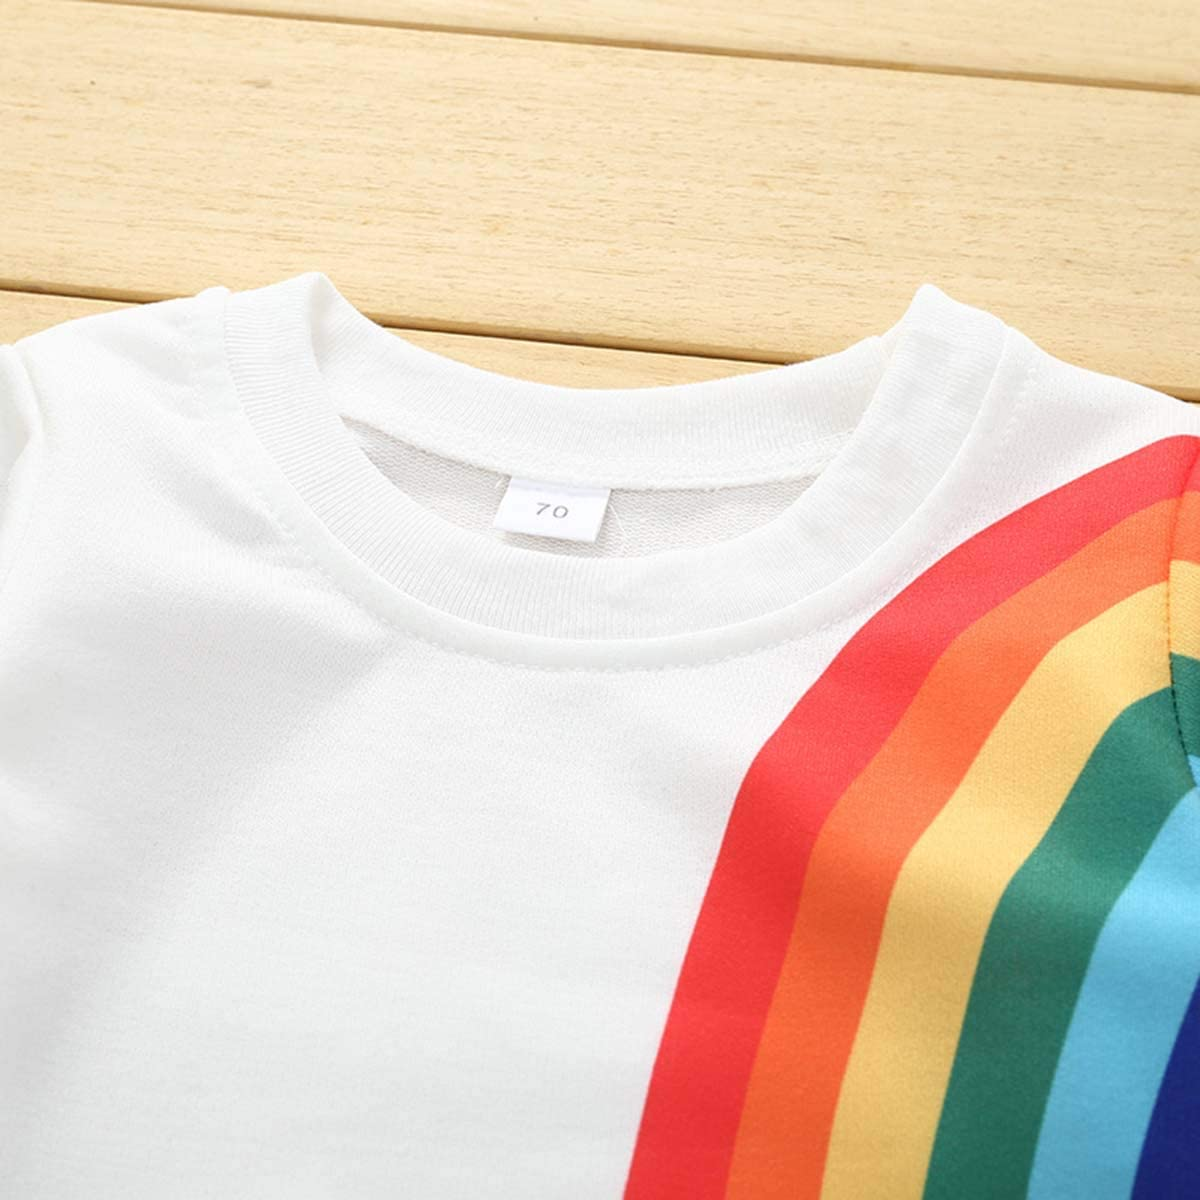 GoBabyGo Baby Girls Springtime Soft Rainbow Top Blouse Long Sleeve Toddler Casual Tops